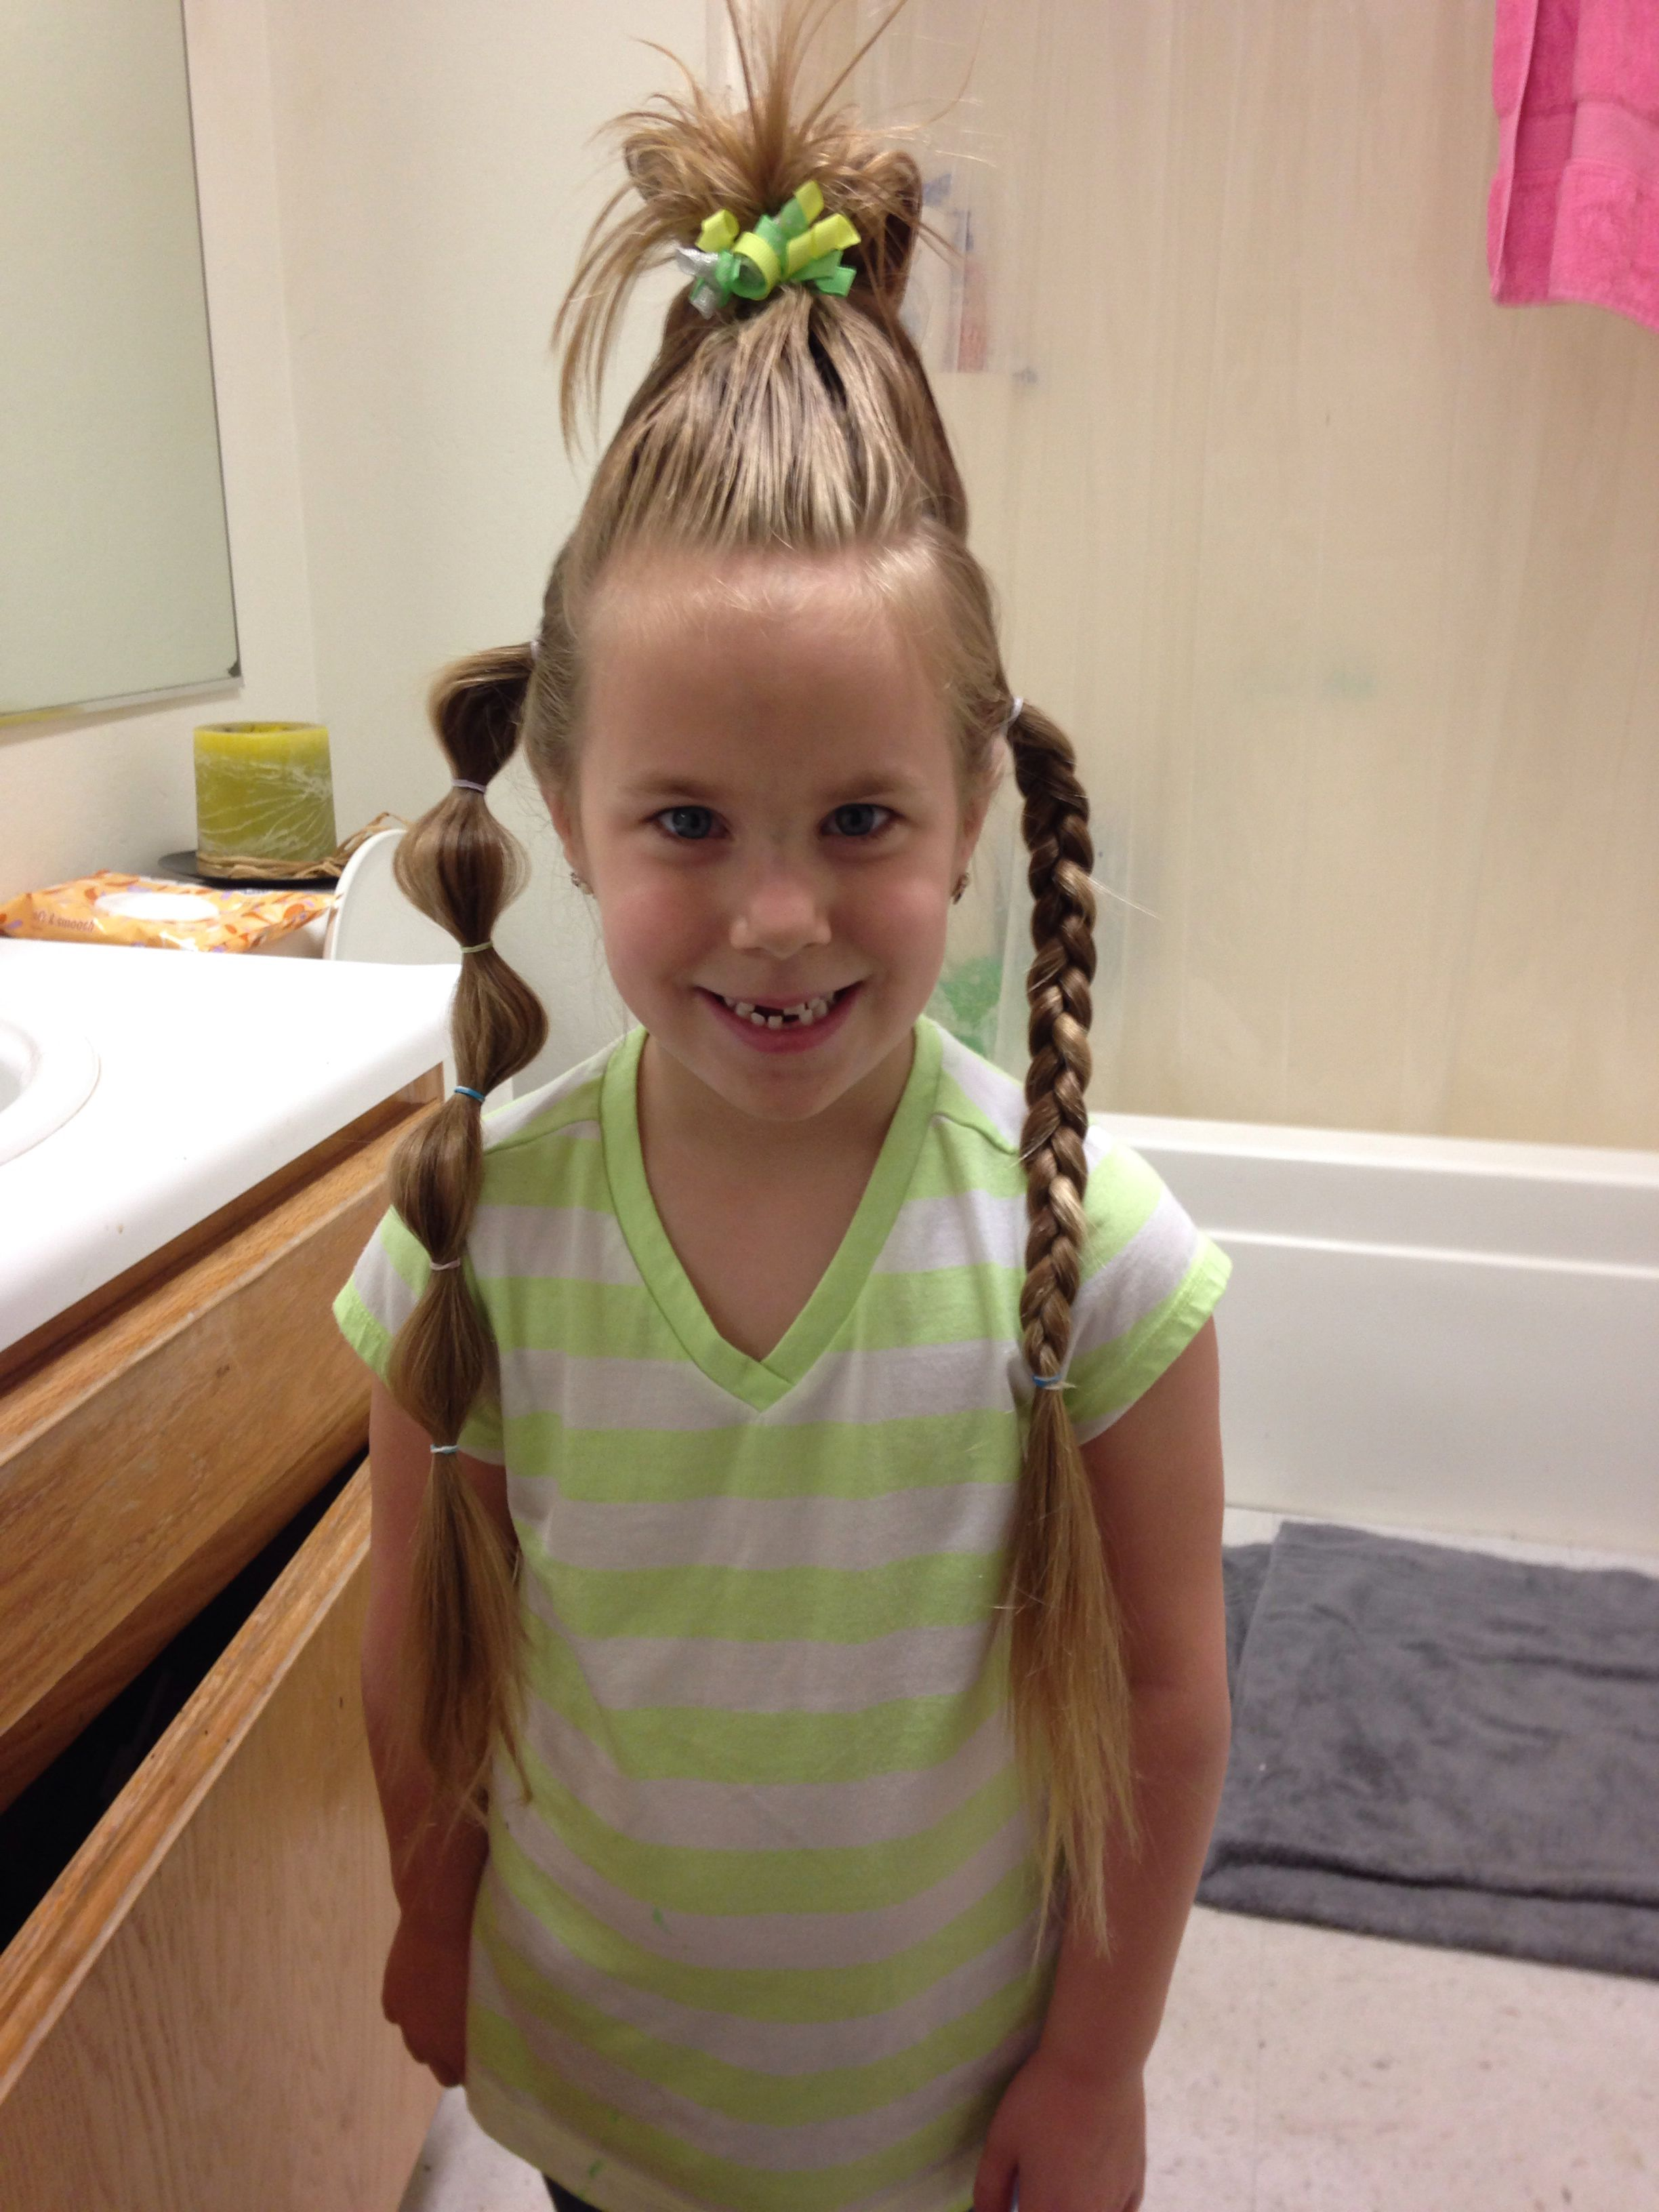 Crazy Hair Day Or Wacky Wednesday Wacky Hair Wacky Hair Days Crazy Hair Days